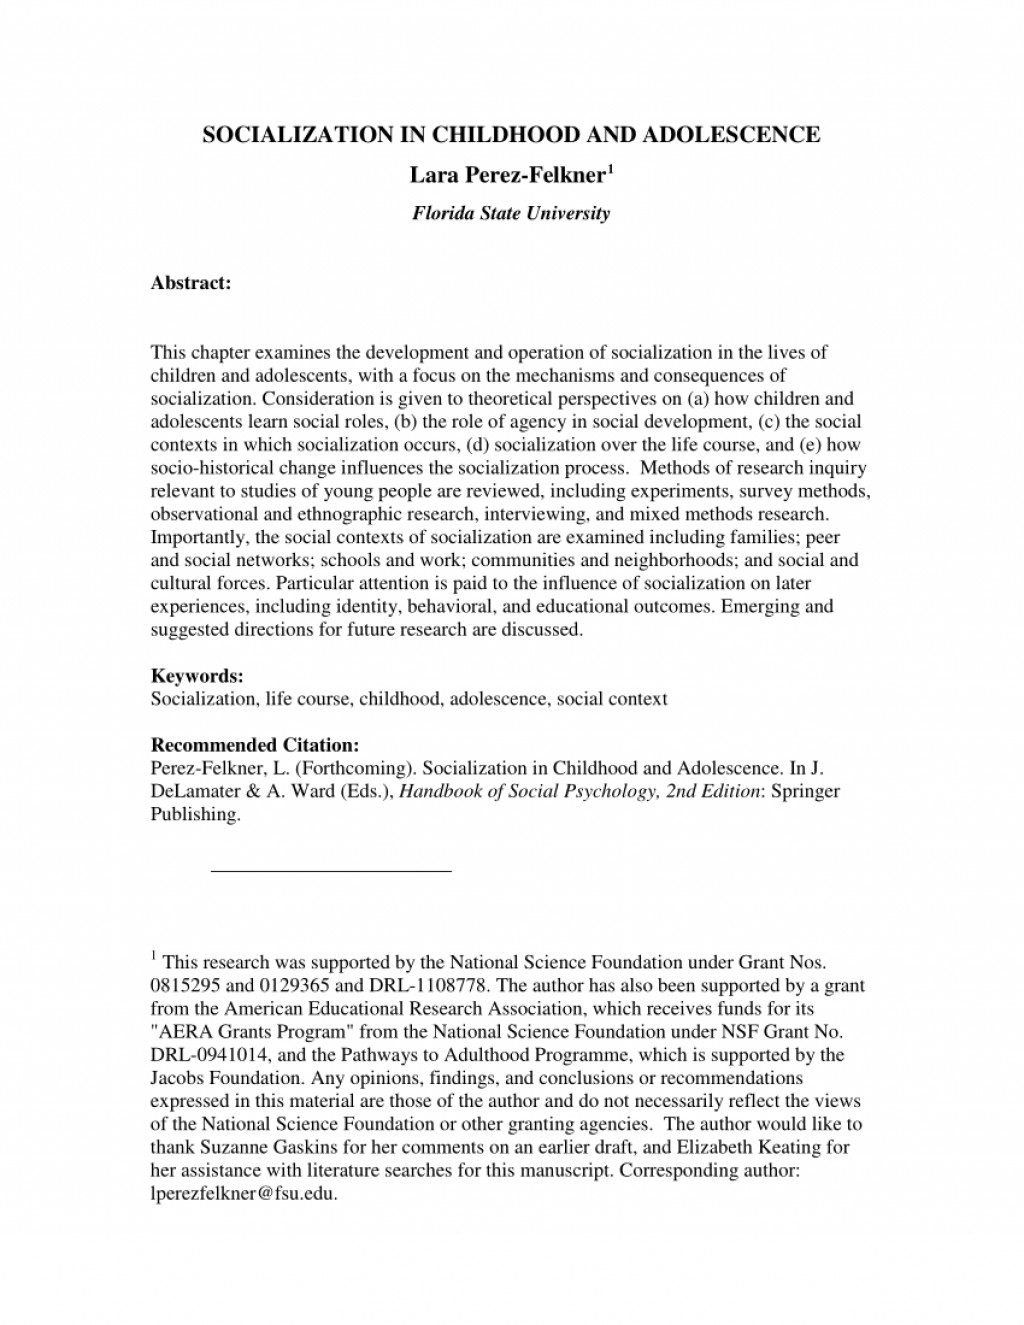 001 Abstract Research Paper About Child And Adolescent Development Pdf Outstanding Large